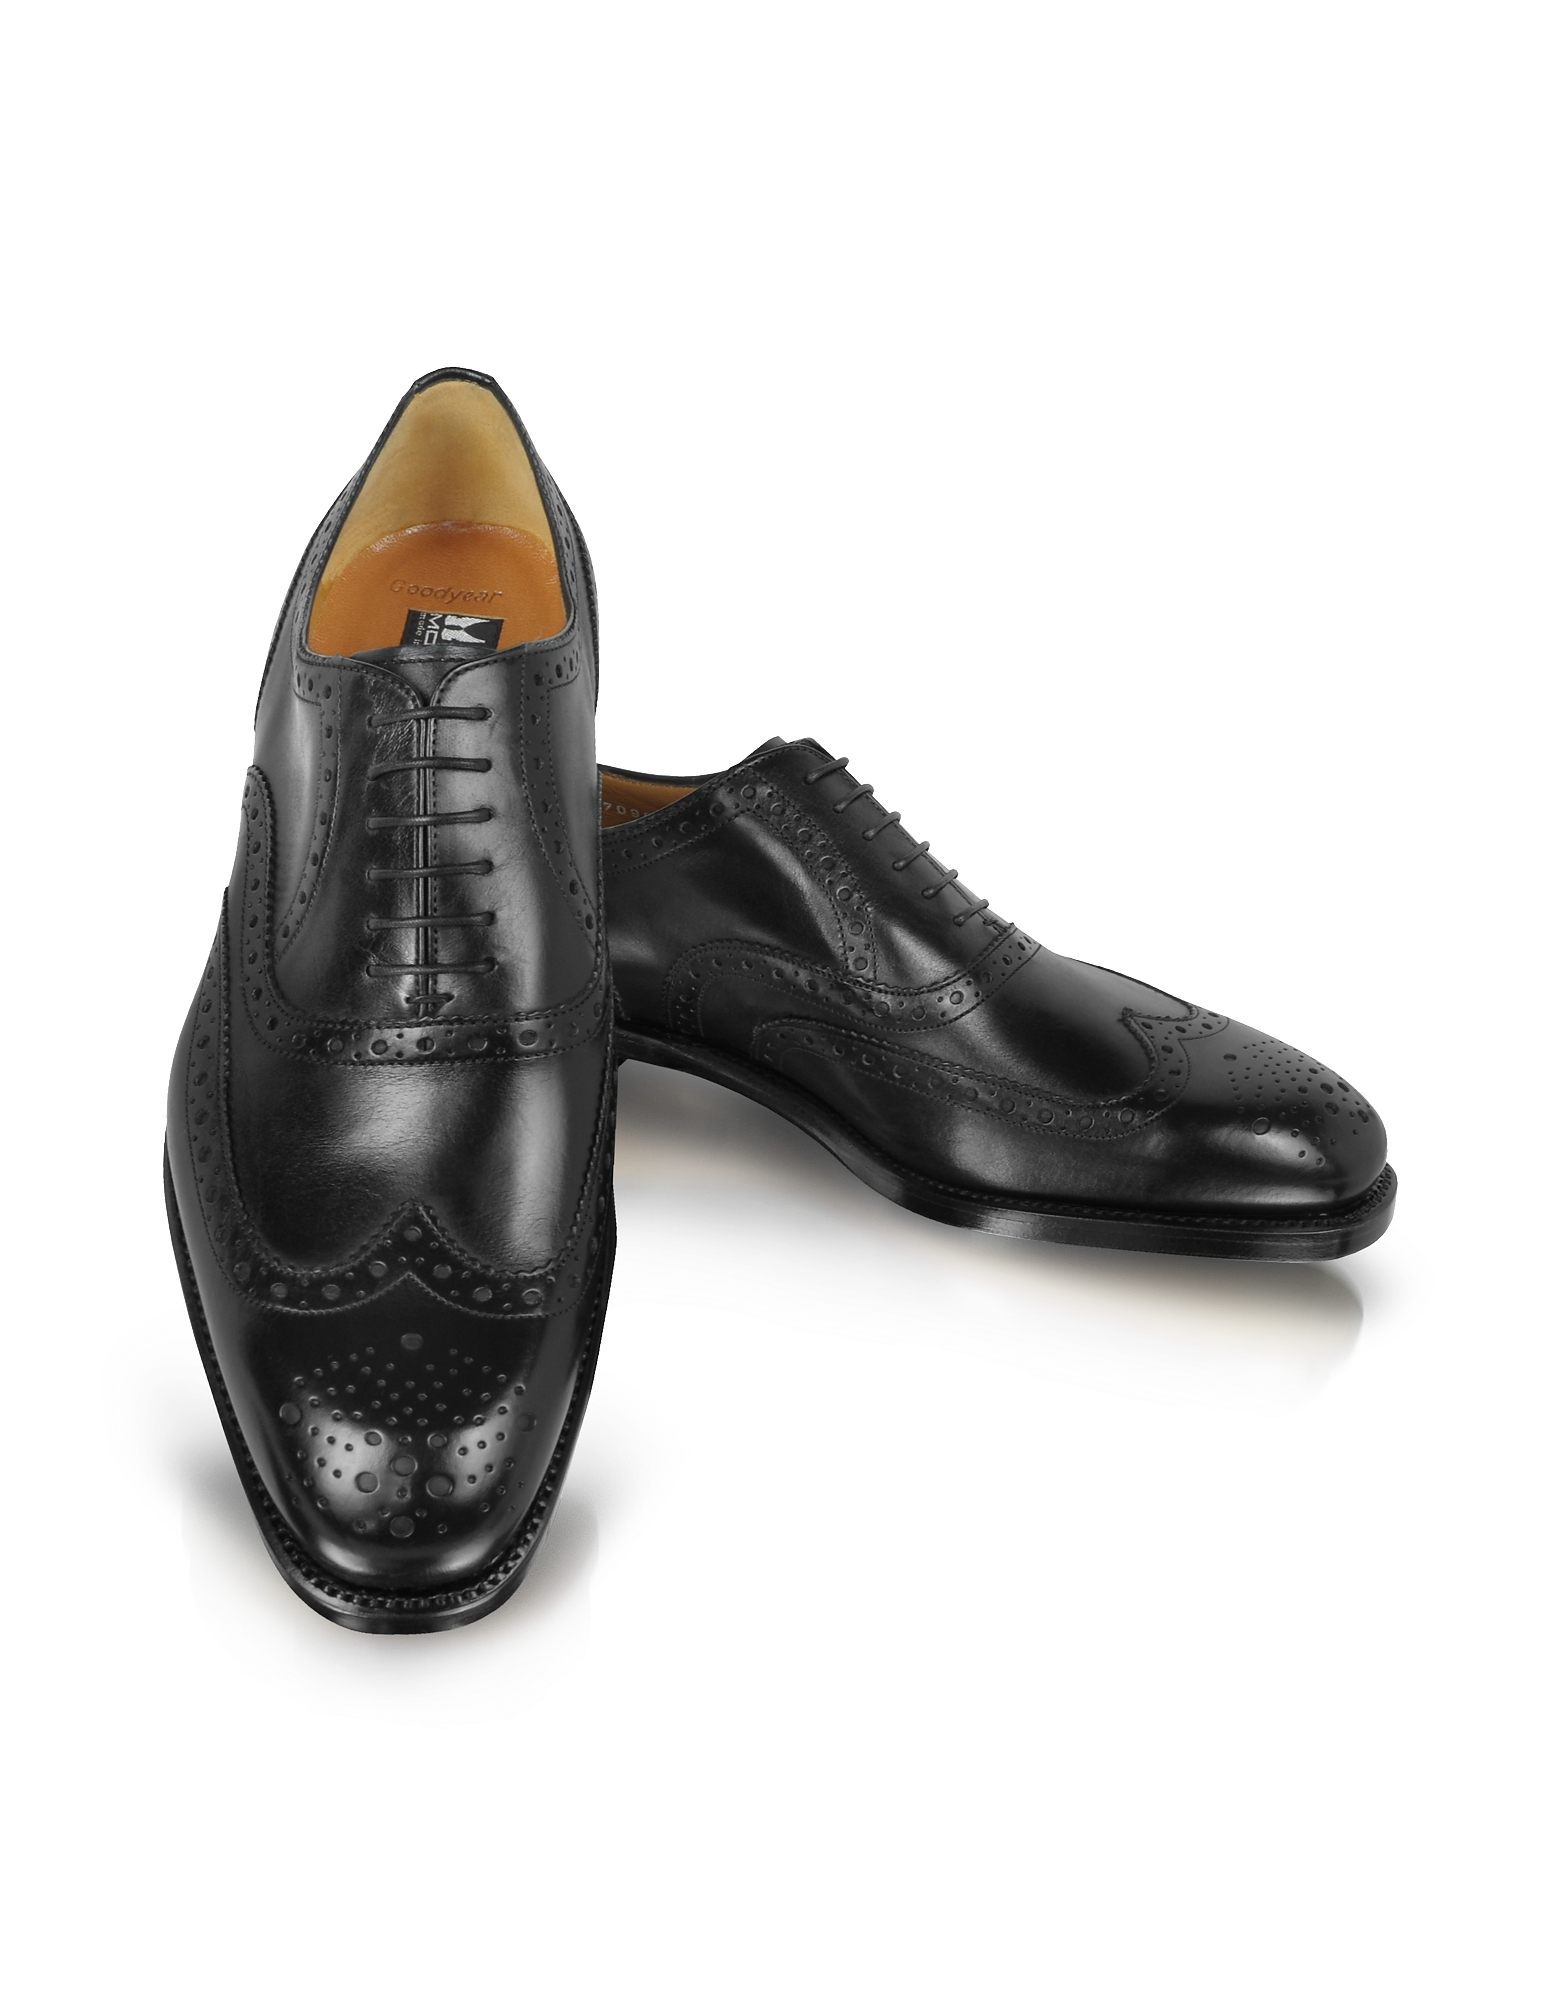 Moreschi Shoes, Black Leather Wingtip Oxford Shoes